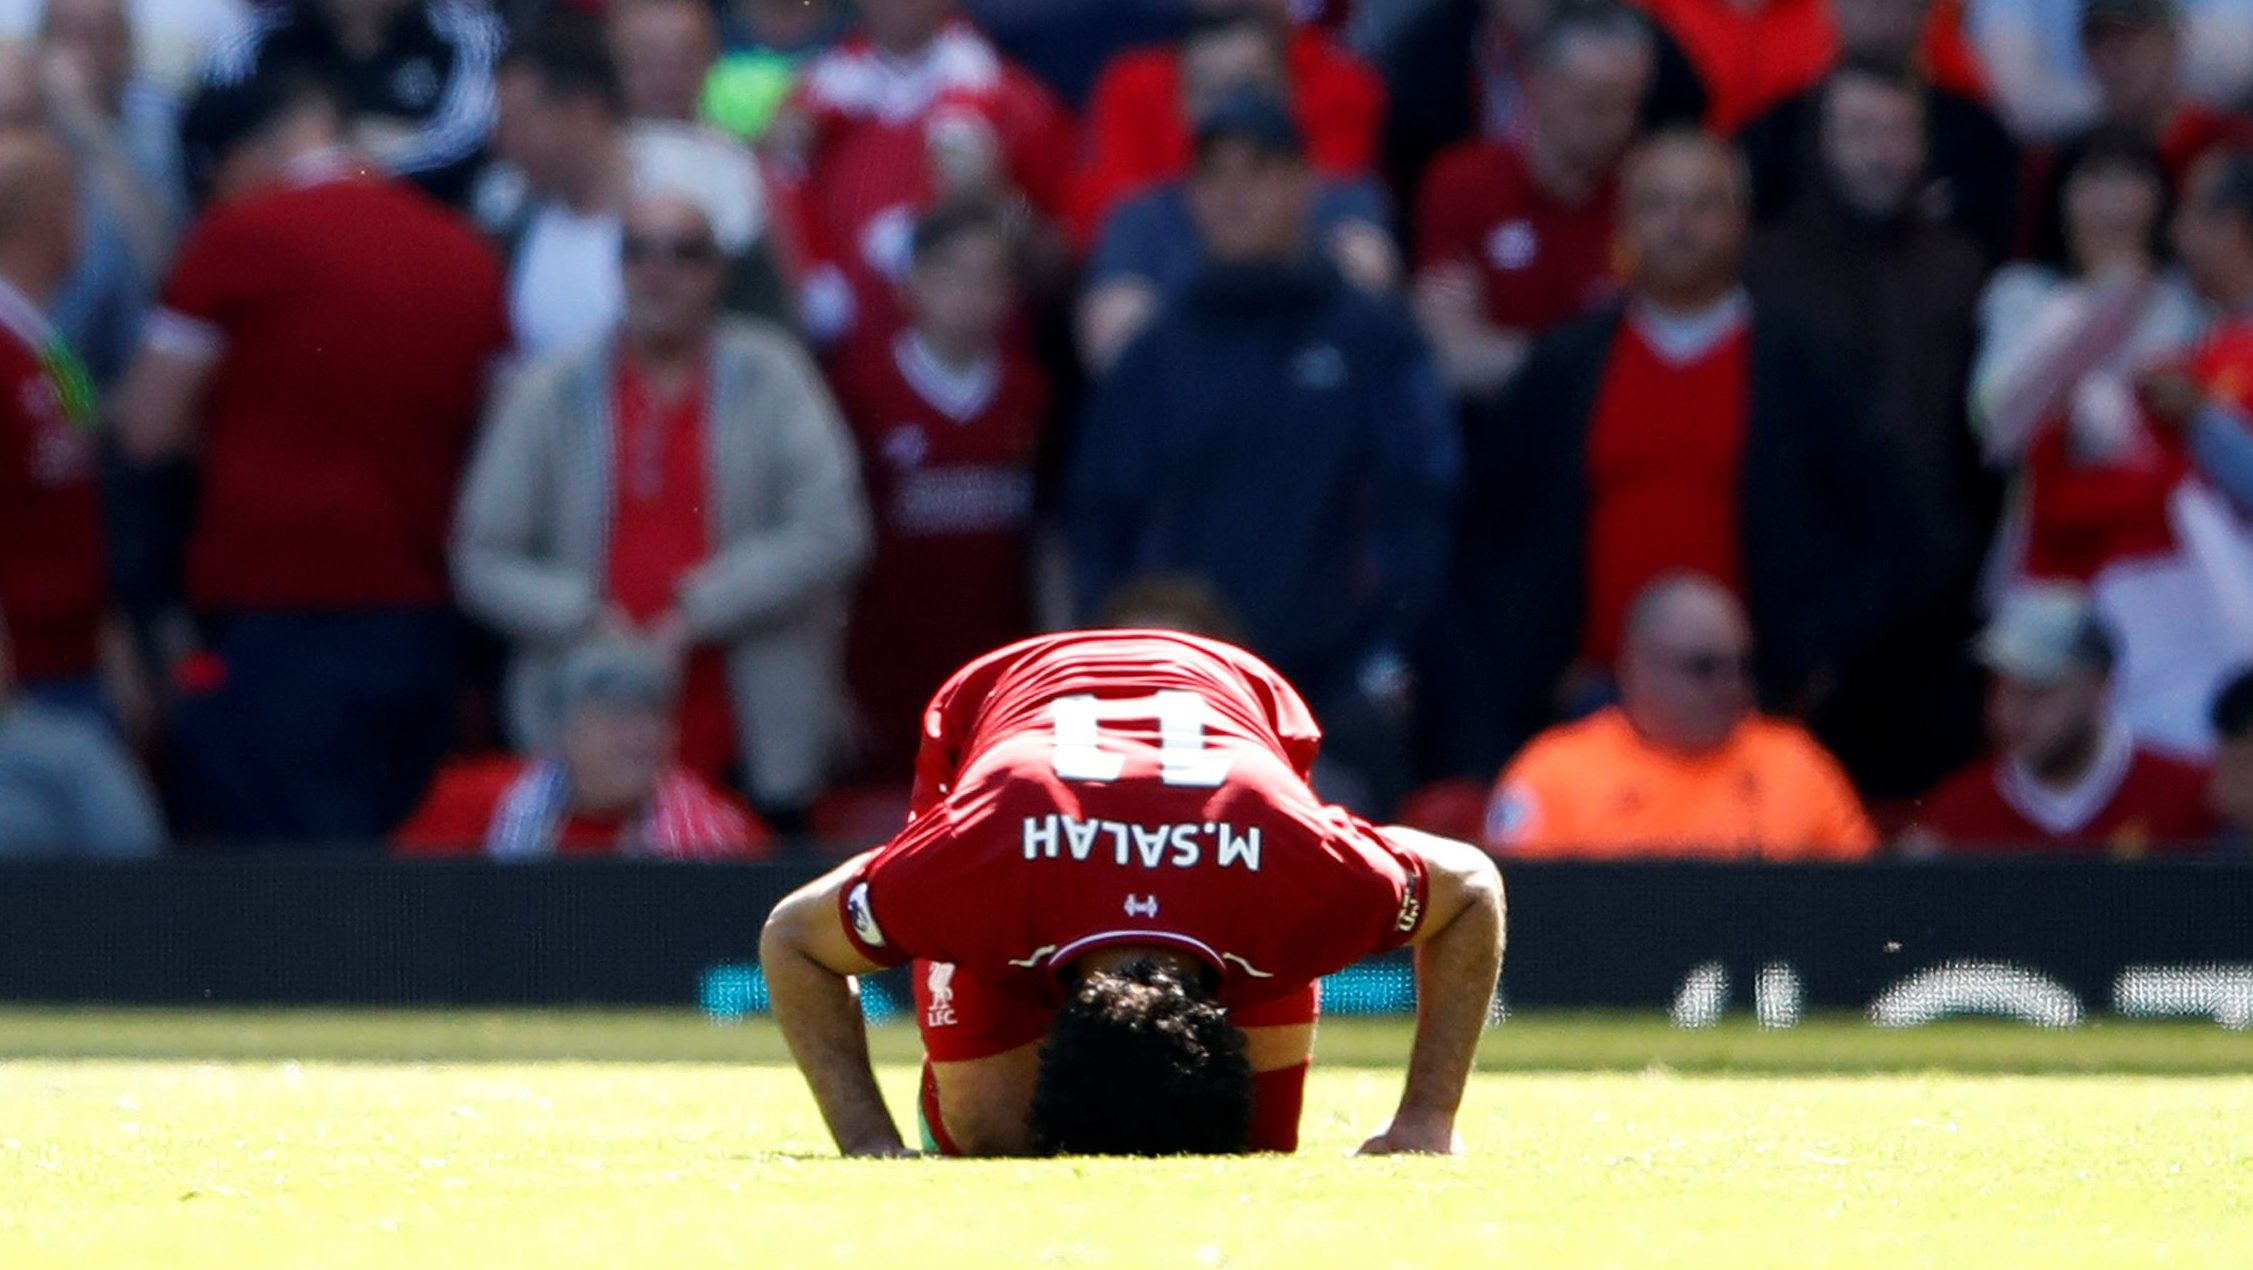 Soccer Football - Premier League - Liverpool vs Brighton & Hove Albion - Anfield, Liverpool, Britain - May 13, 2018   Liverpool's Mohamed Salah celebrates scoring their first goal.